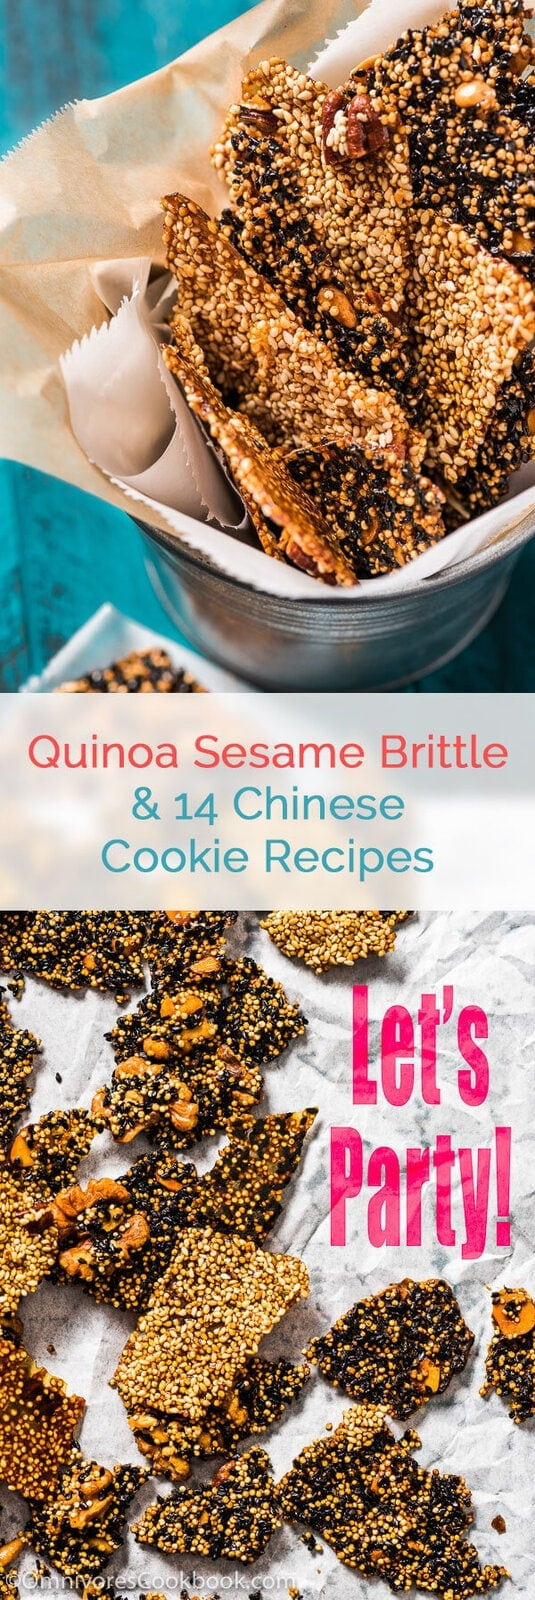 Quinoa Sesame Brittle - Only 150 calories per serving, full of nutrition, and just 10 minutes active cooking time. | omnivorescookbook.com